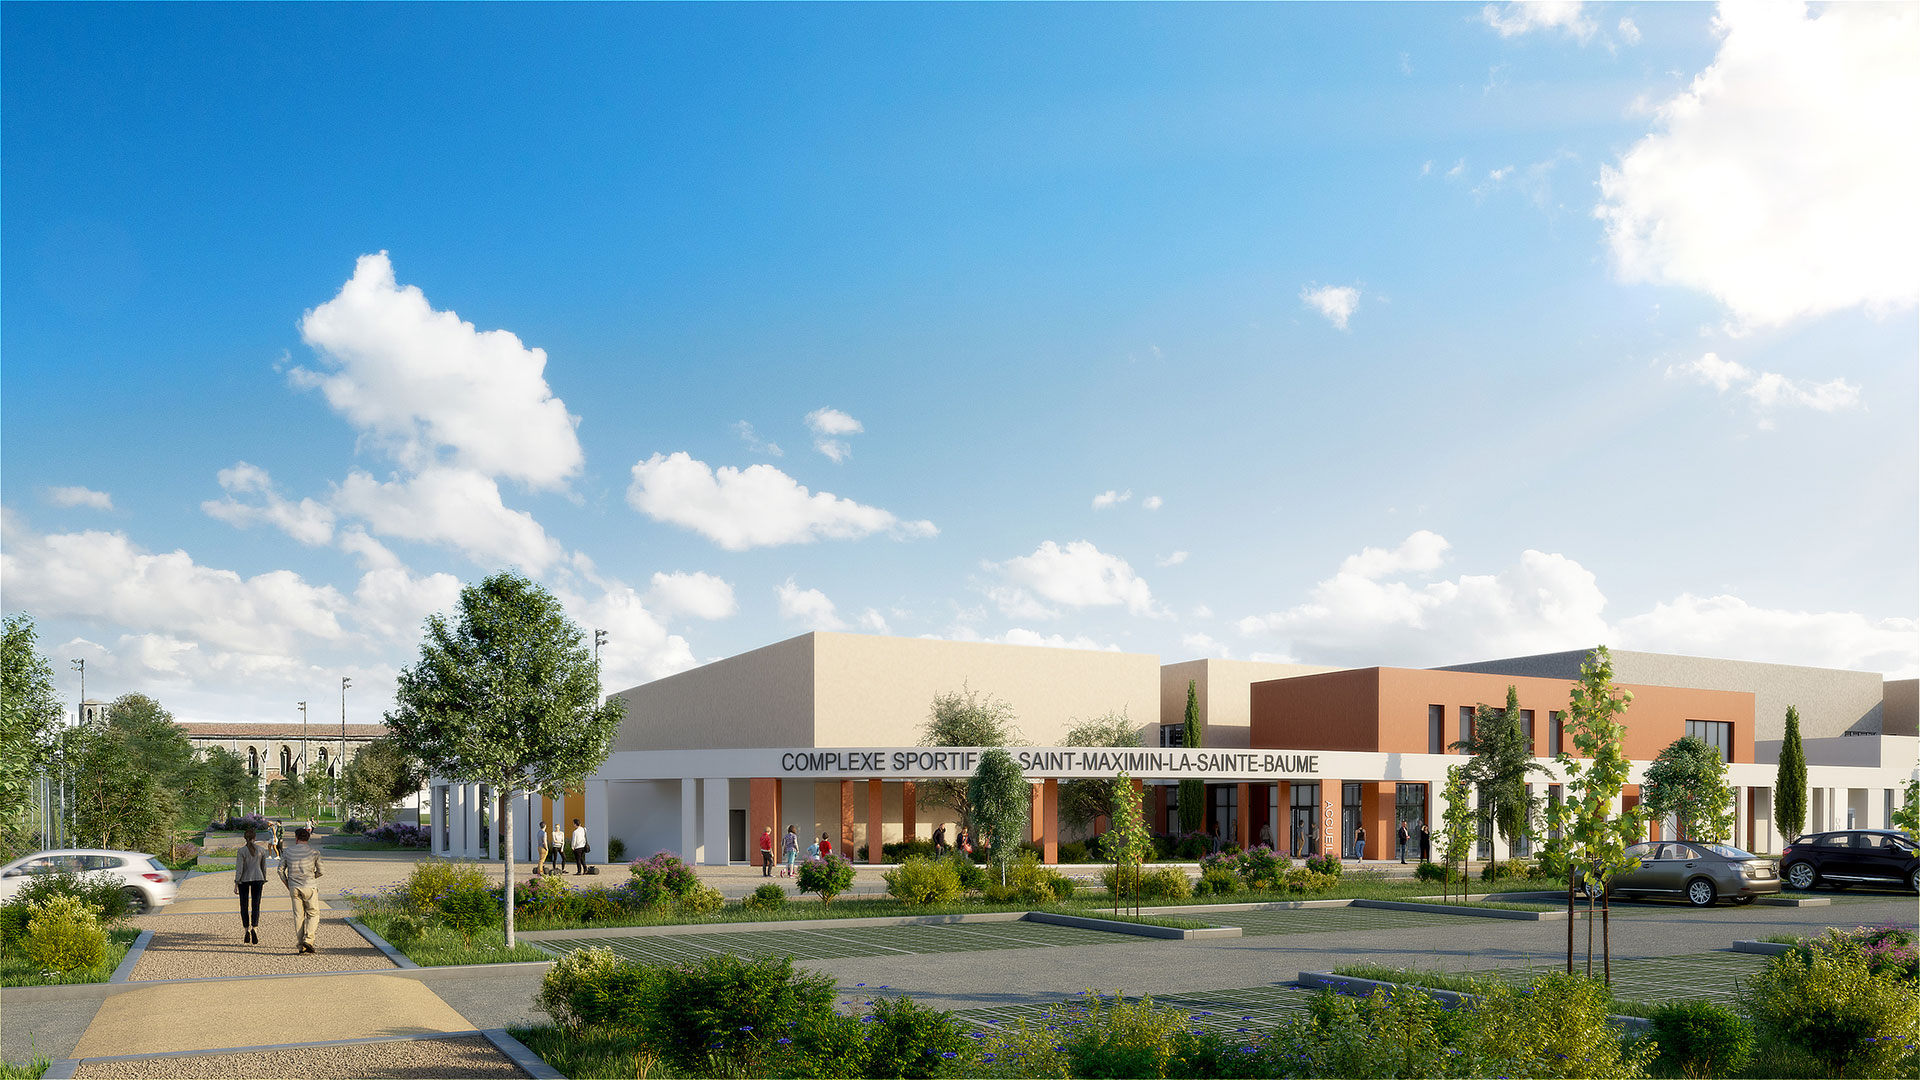 Architectural visualization in 3D of the exterior of a sports centre